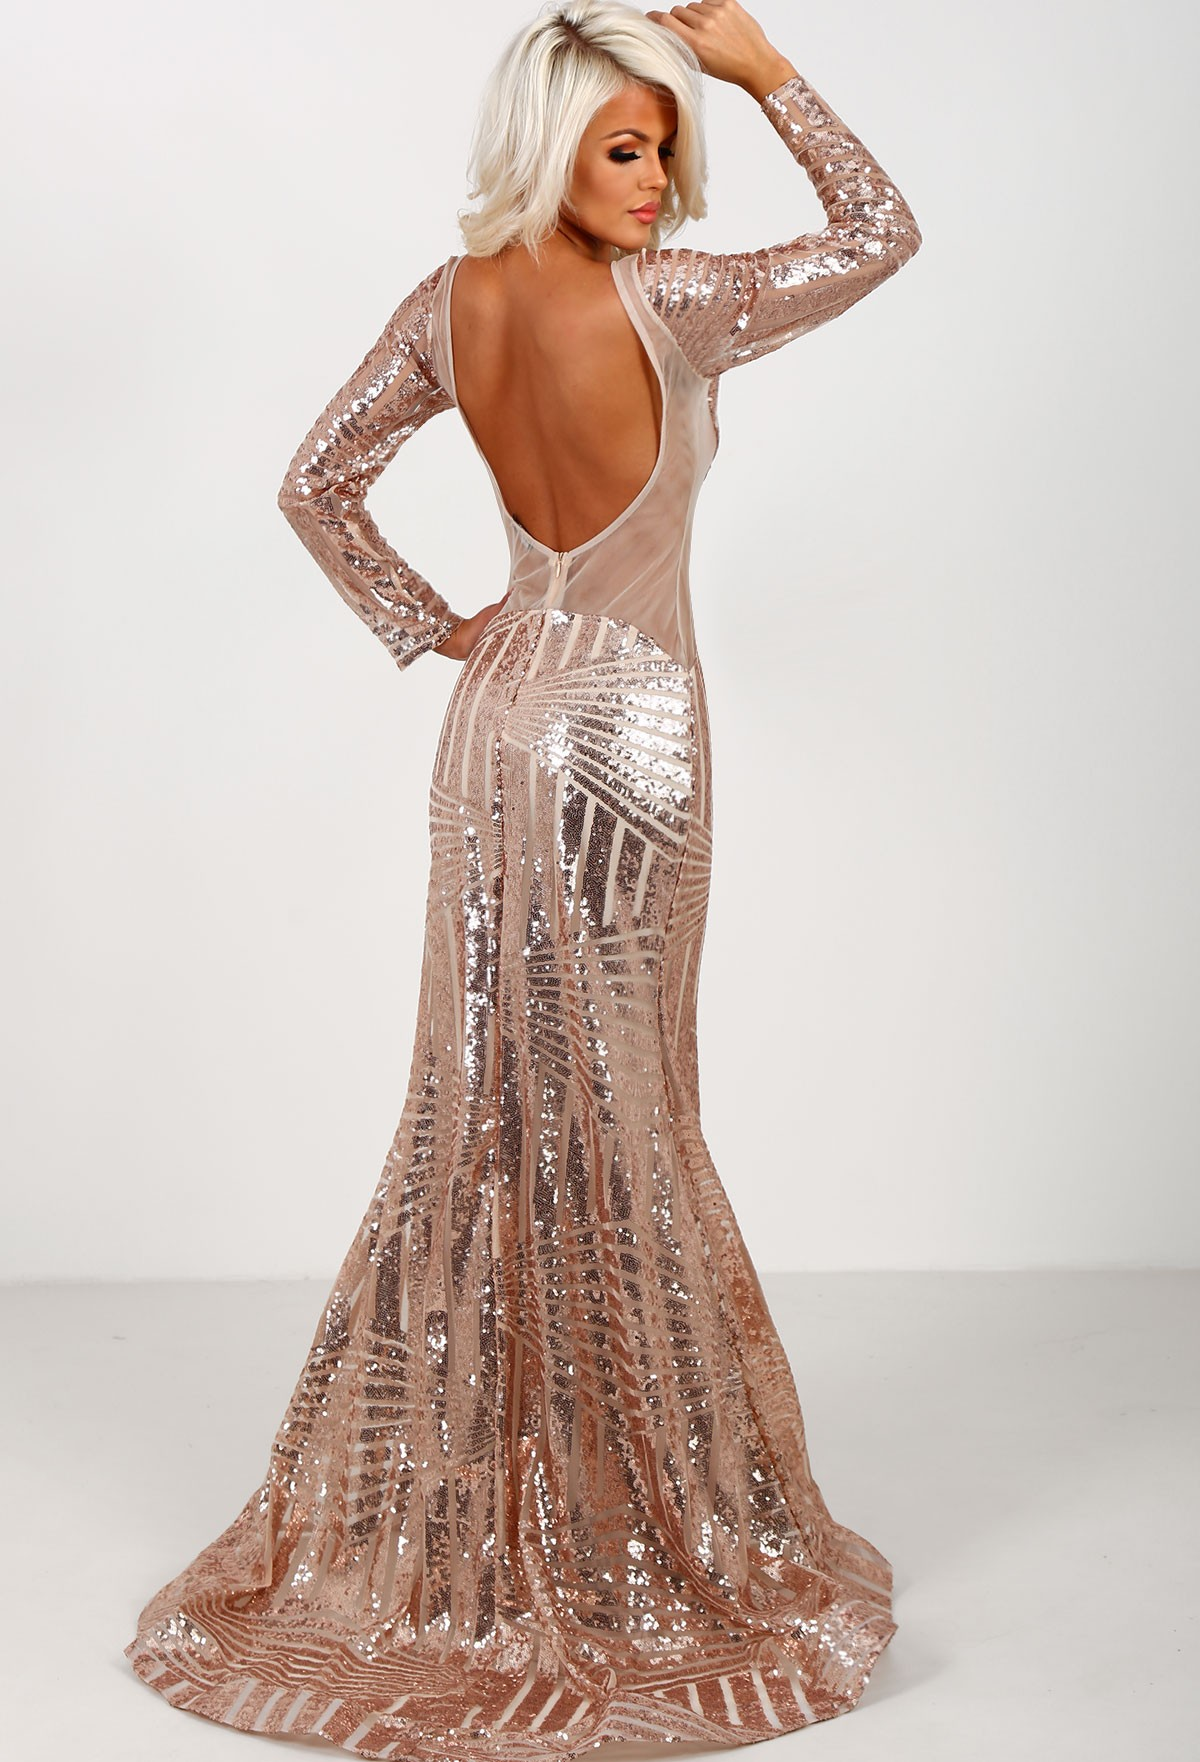 Rose Gold Sequin Dress Long Sleeve And Popular Styles 2017